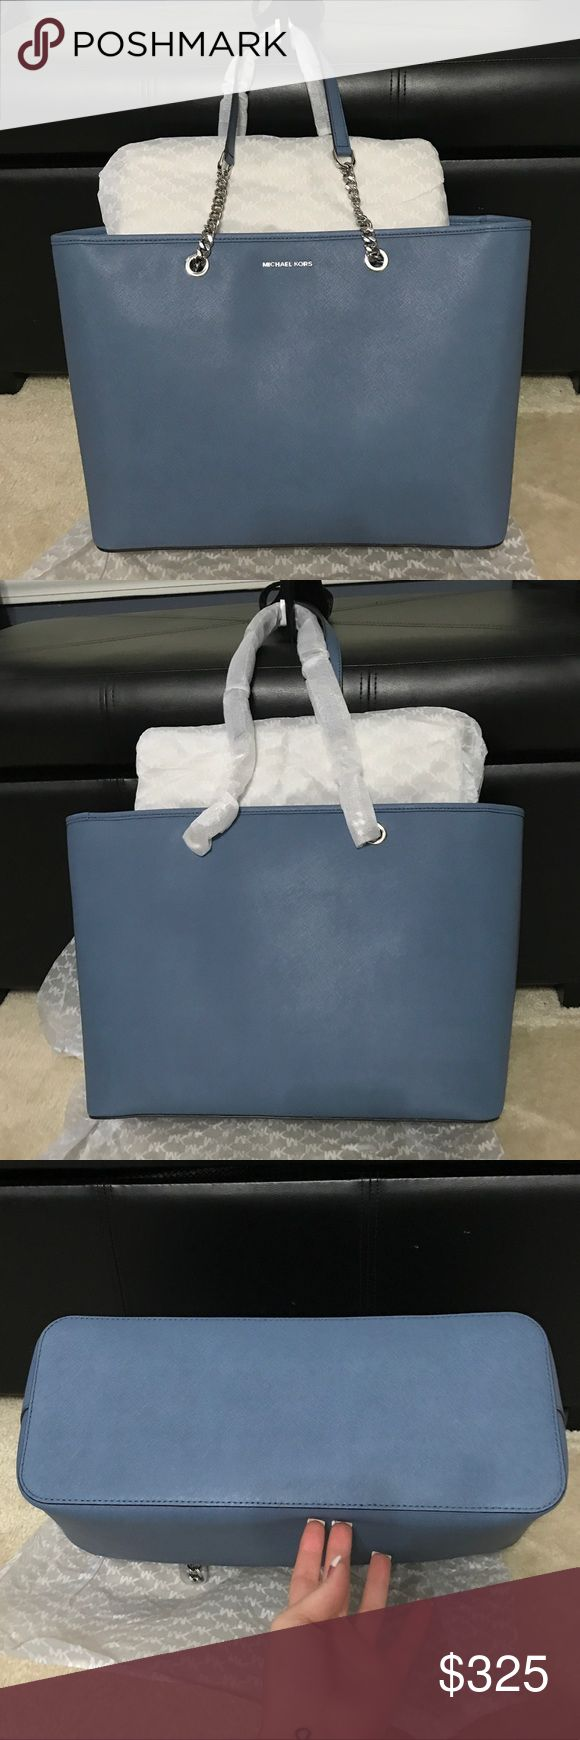 """NWT Michael Kors JetSet Multifunction Tote Brand new beautiful bag.  Color is Denim/Silver.  Photo 6 is the web description, however, I personally wouldn't consider this """"medium"""" - look at the measurements- it's a full sized tote!  To be clear, the color is Denim with Silver hardware, not black as the 2 stock photos show (#7 and #8).  Price firm 🖤 Michael Kors Bags"""